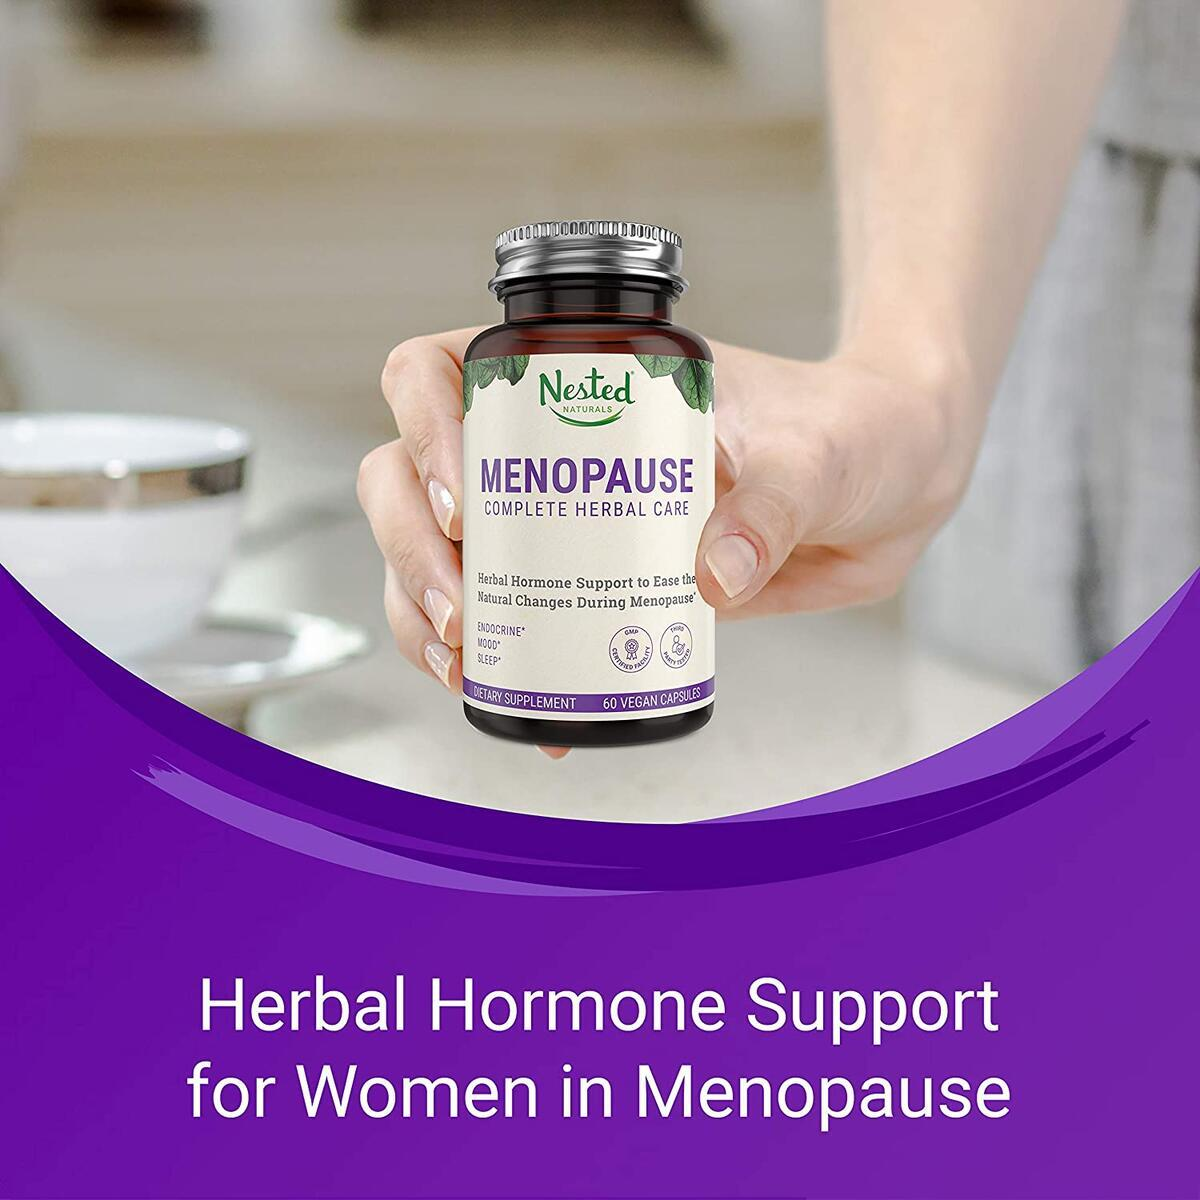 Nested Naturals Menopause Complete Herbal Care Supplement for Women | Support for Mood Swings & Hot Flashes | One A Day Menopause Relief